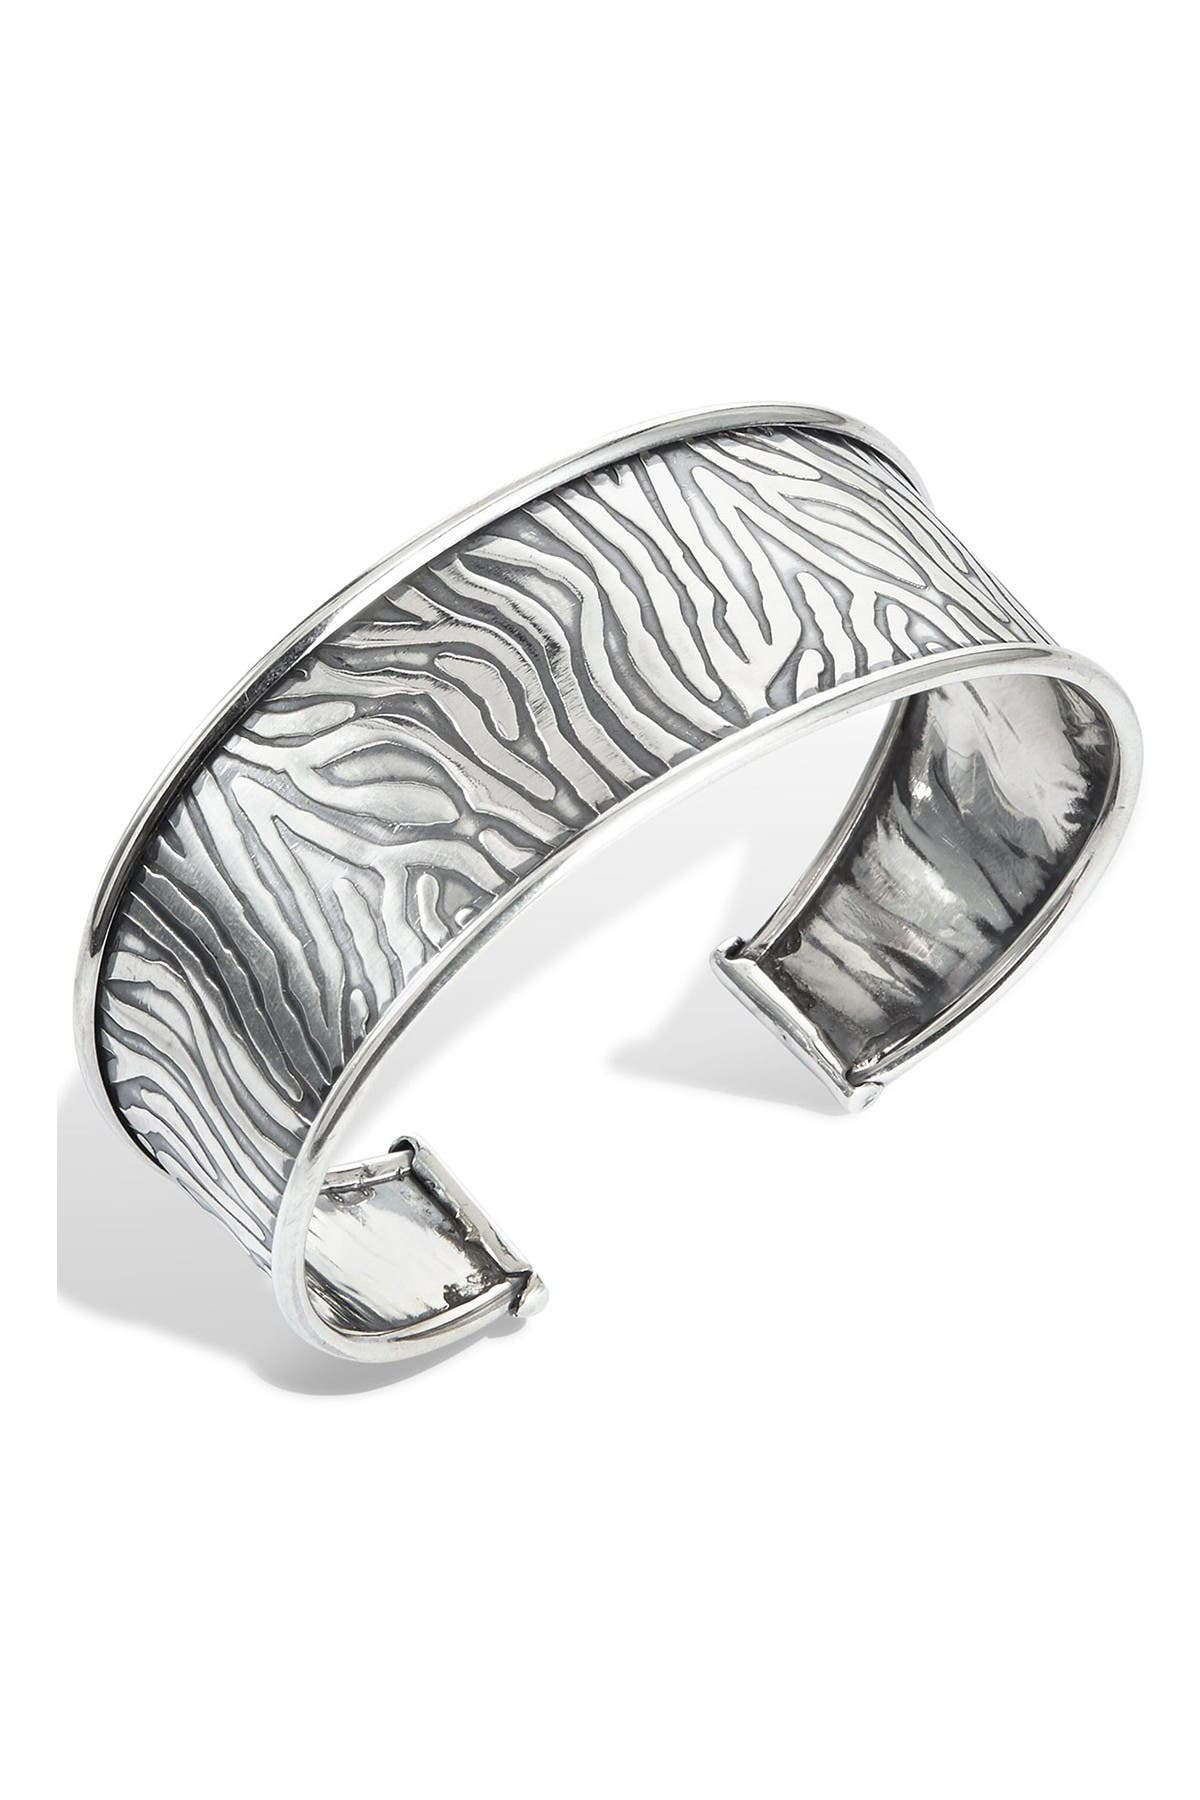 Image of Savvy Cie Sterling Silver Wide Cuff